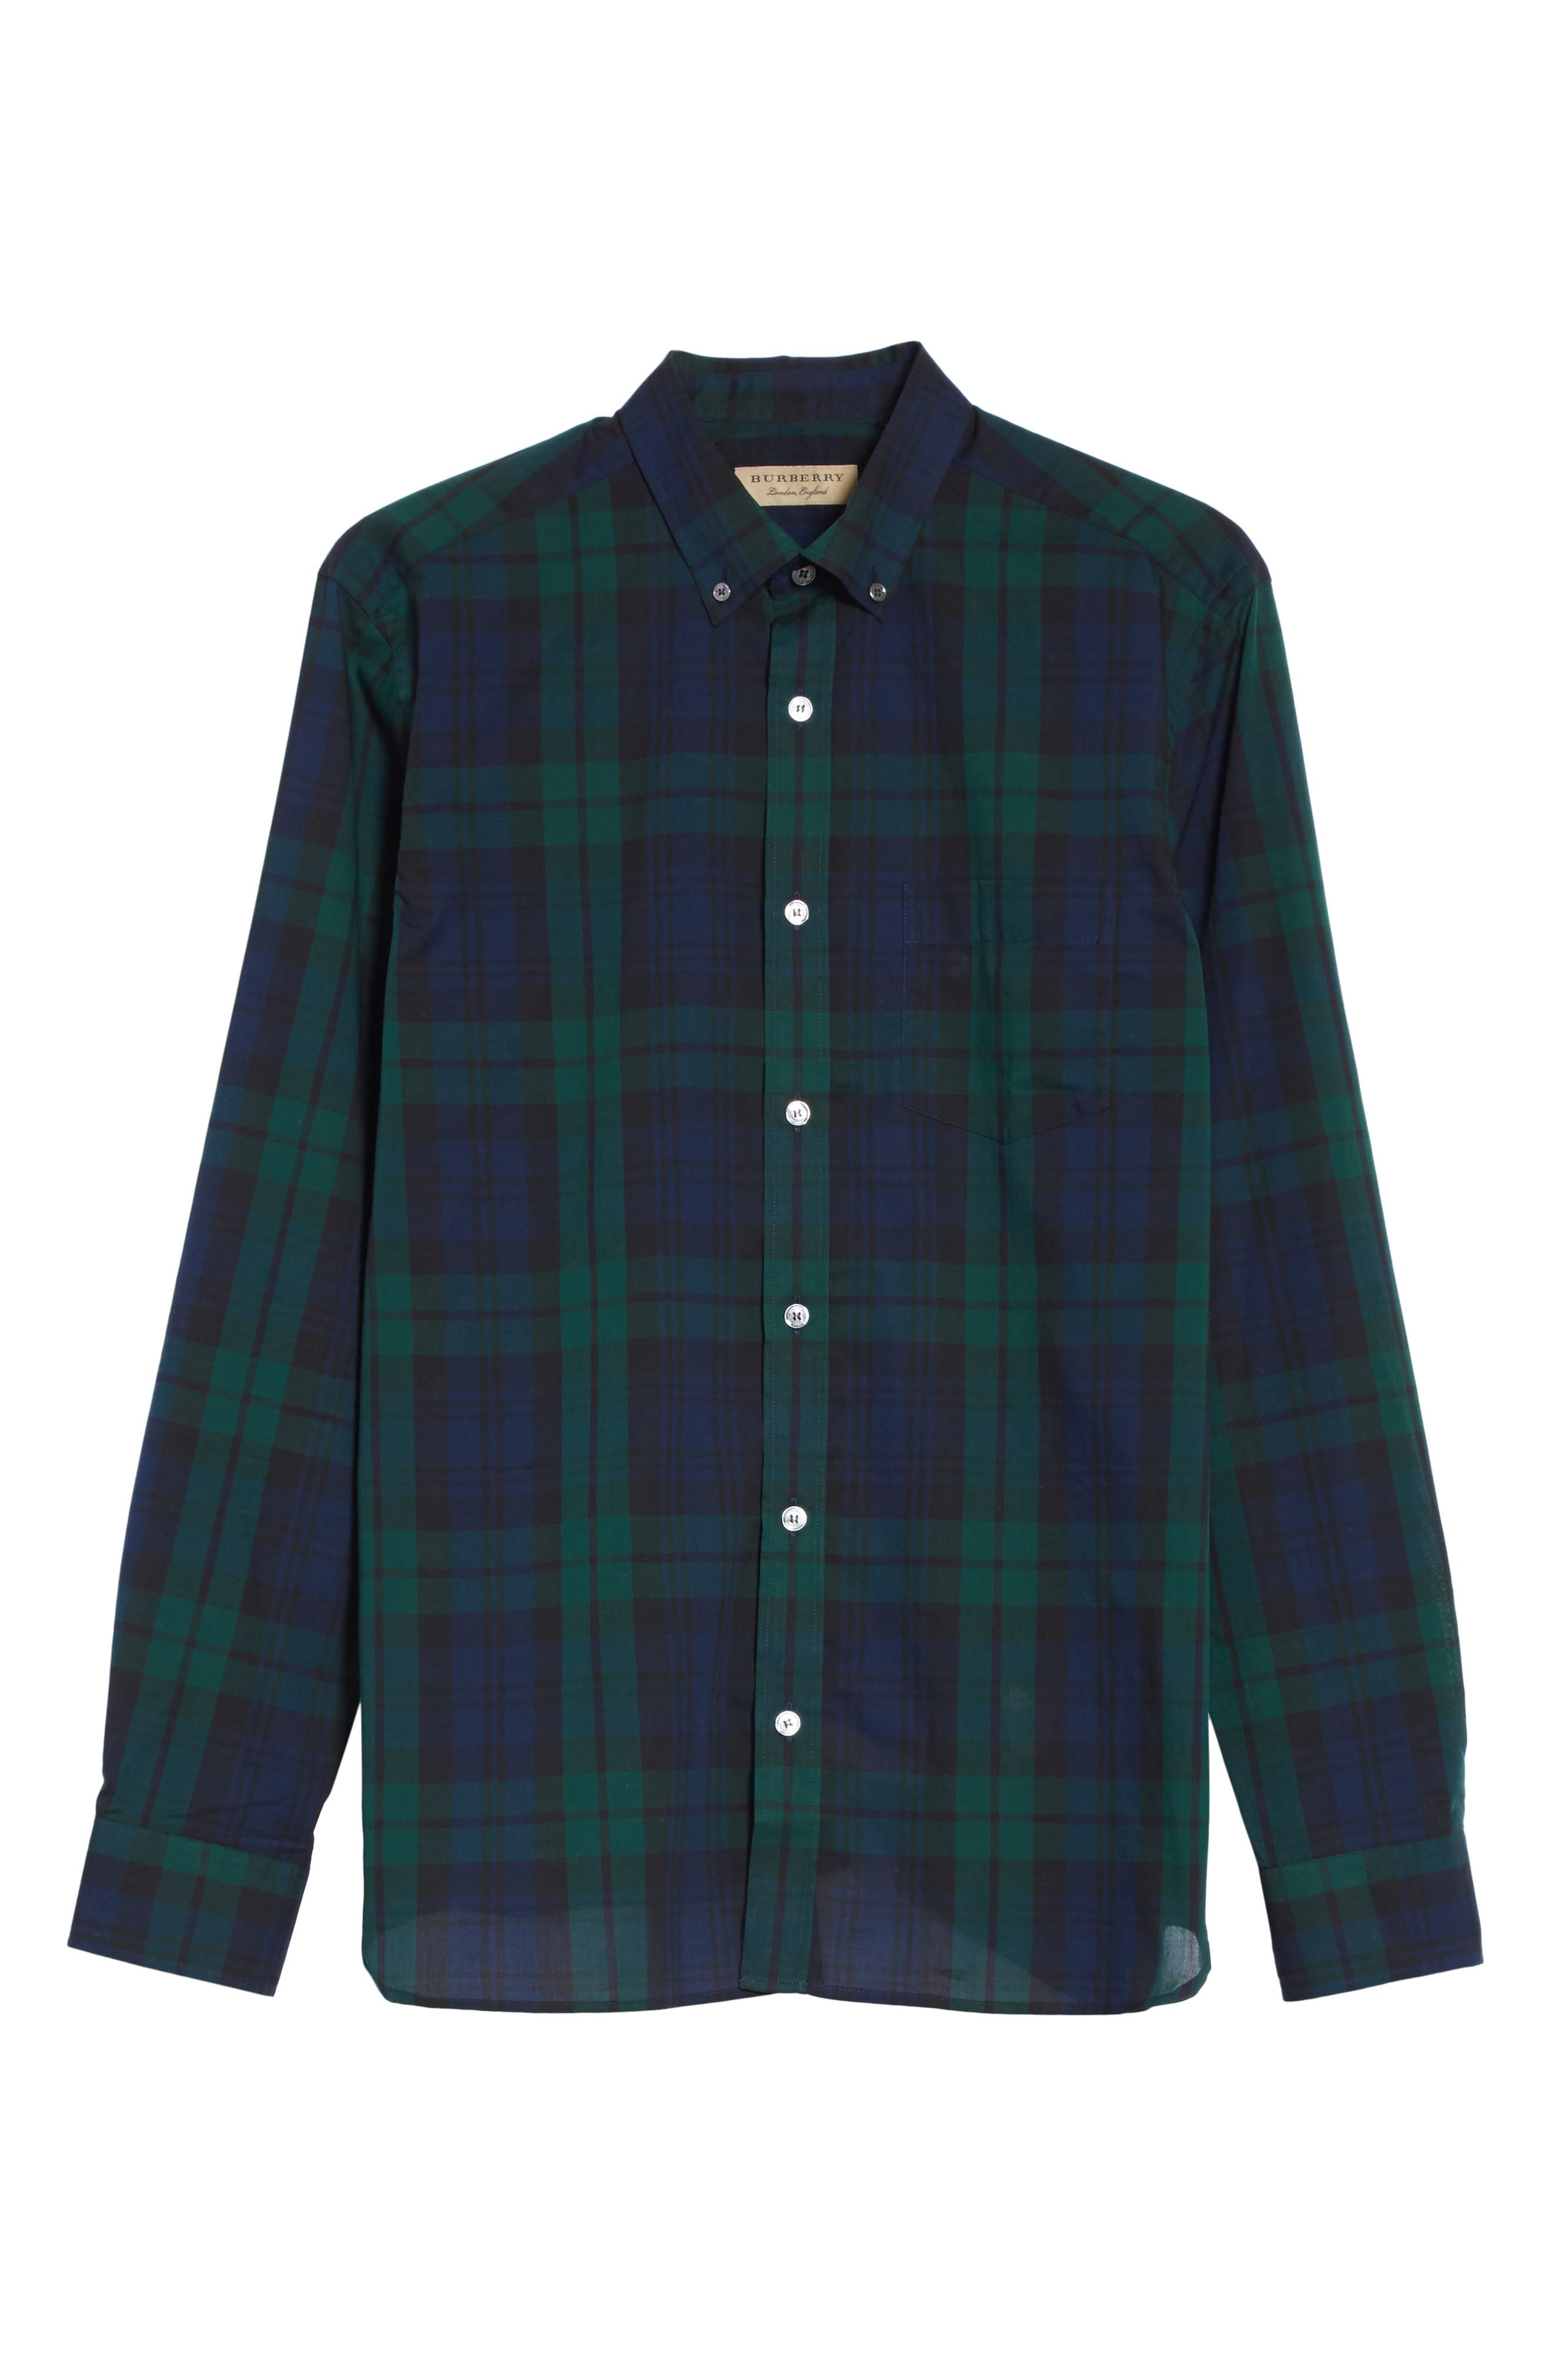 Salwick Tartan Plaid Sport Shirt,                             Alternate thumbnail 6, color,                             Navy